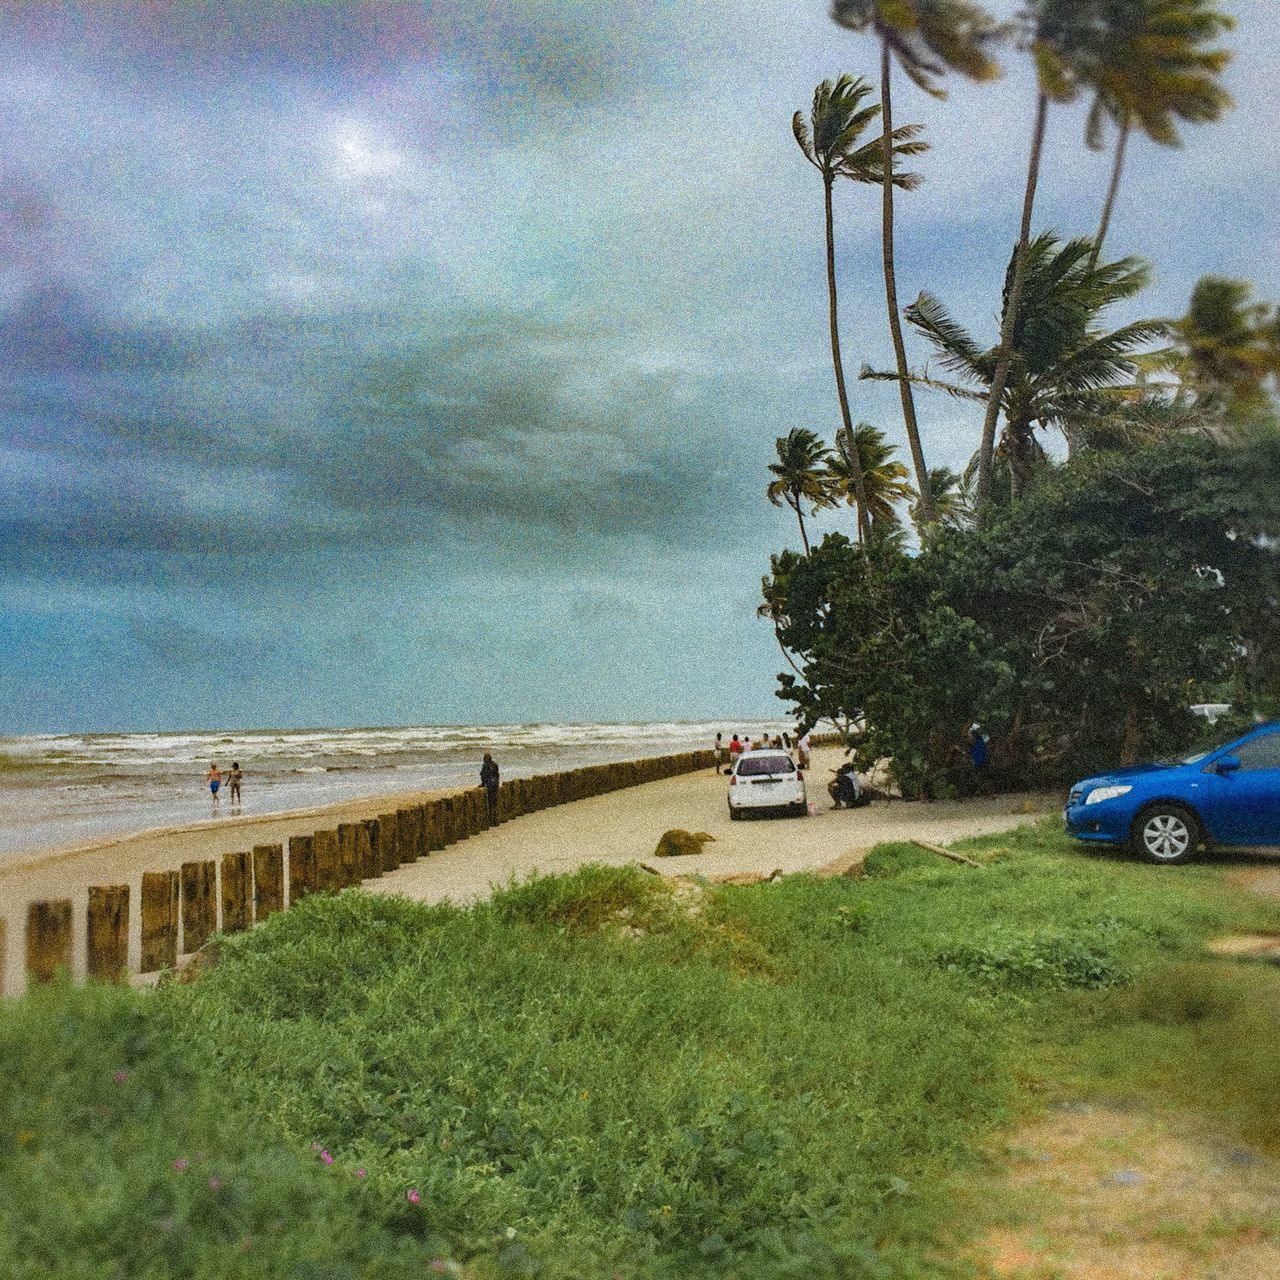 car, cloud - sky, sky, nature, day, tree, transportation, grass, outdoors, scenics, land vehicle, water, beach, tranquility, beauty in nature, landscape, no people, palm tree, sea, horizon over water